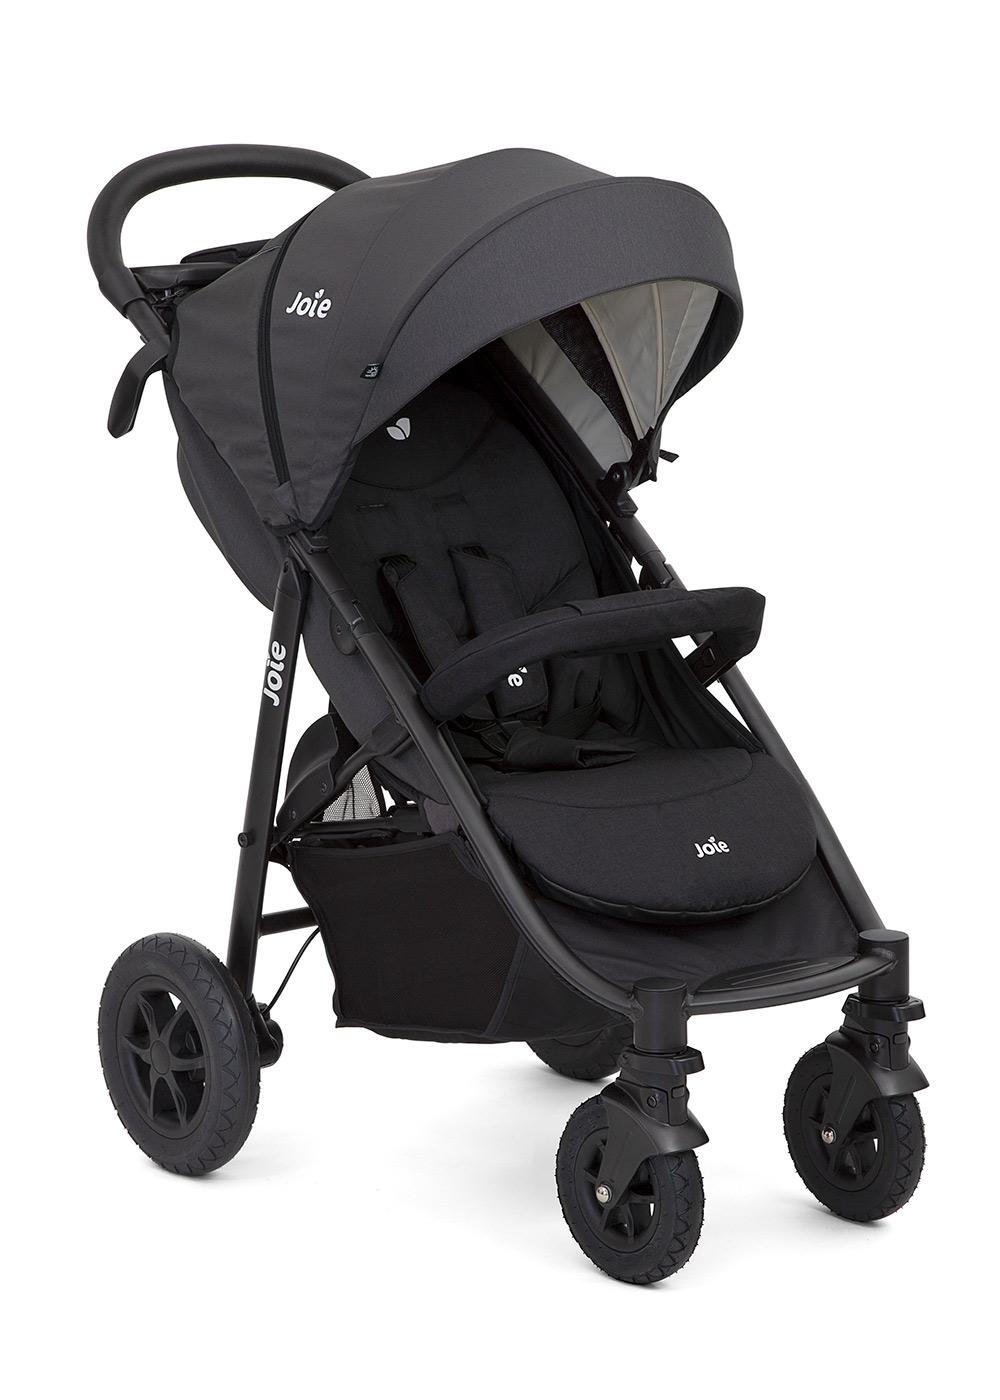 Joie Litetrax 4 S pushchair Coal - Joie